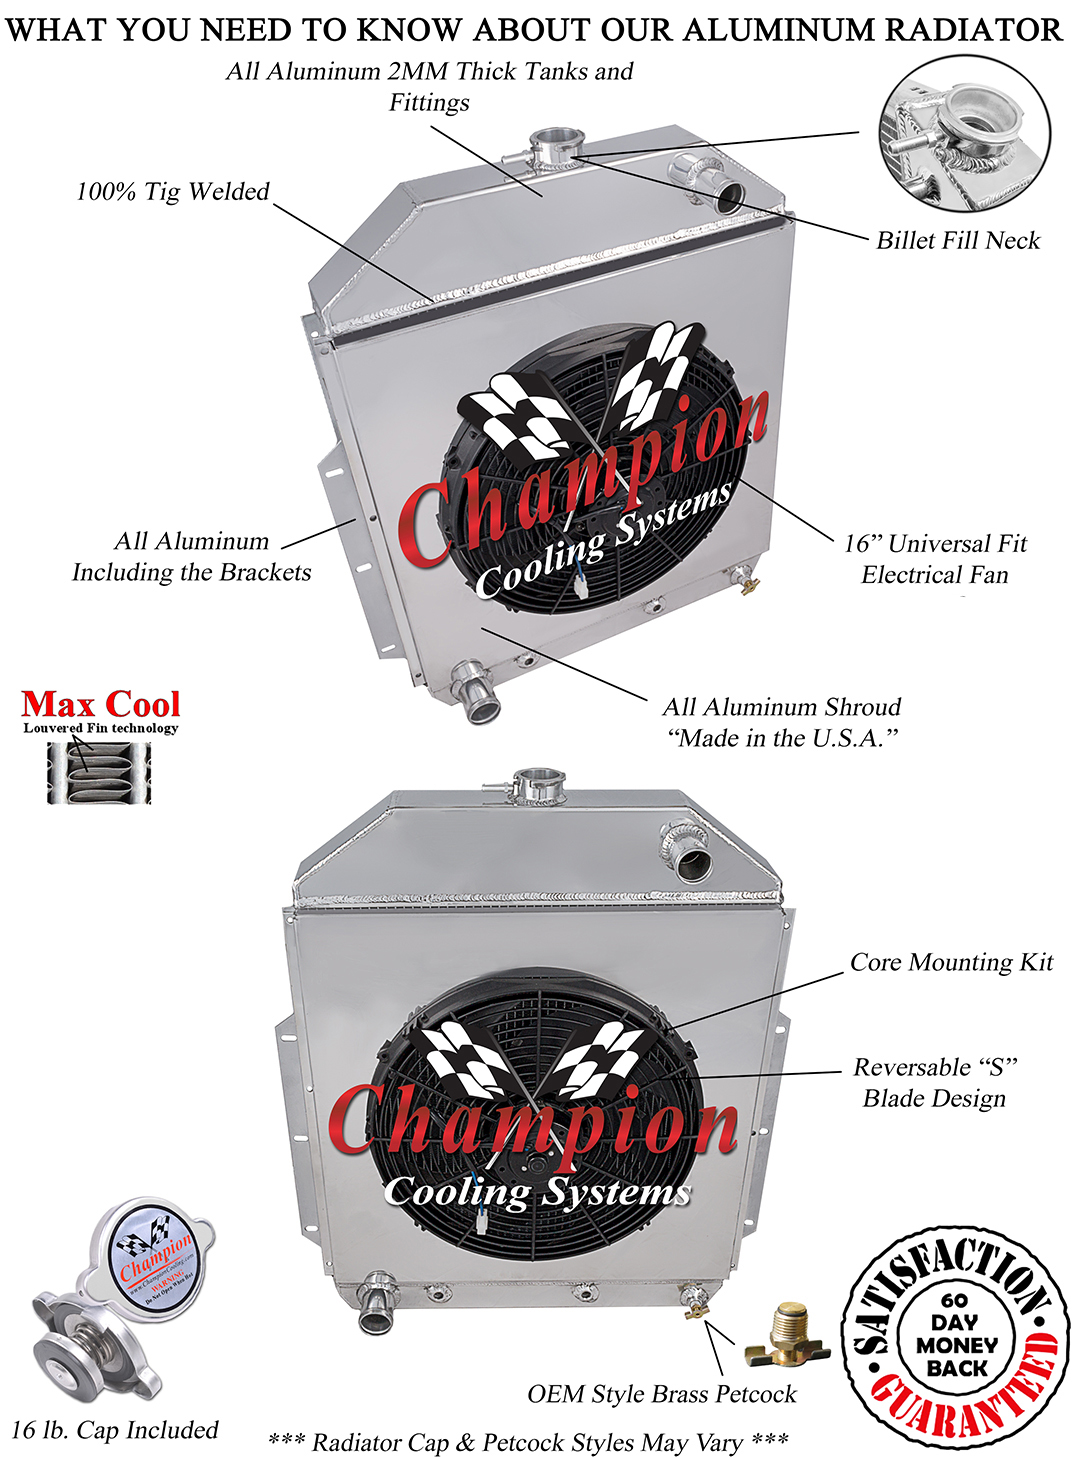 https://www.championcooling.com/photos/Photos%20White/With%20Fans/W-Shroud/4252FD/FS4252FD_white_Diagram_Champion.jpg